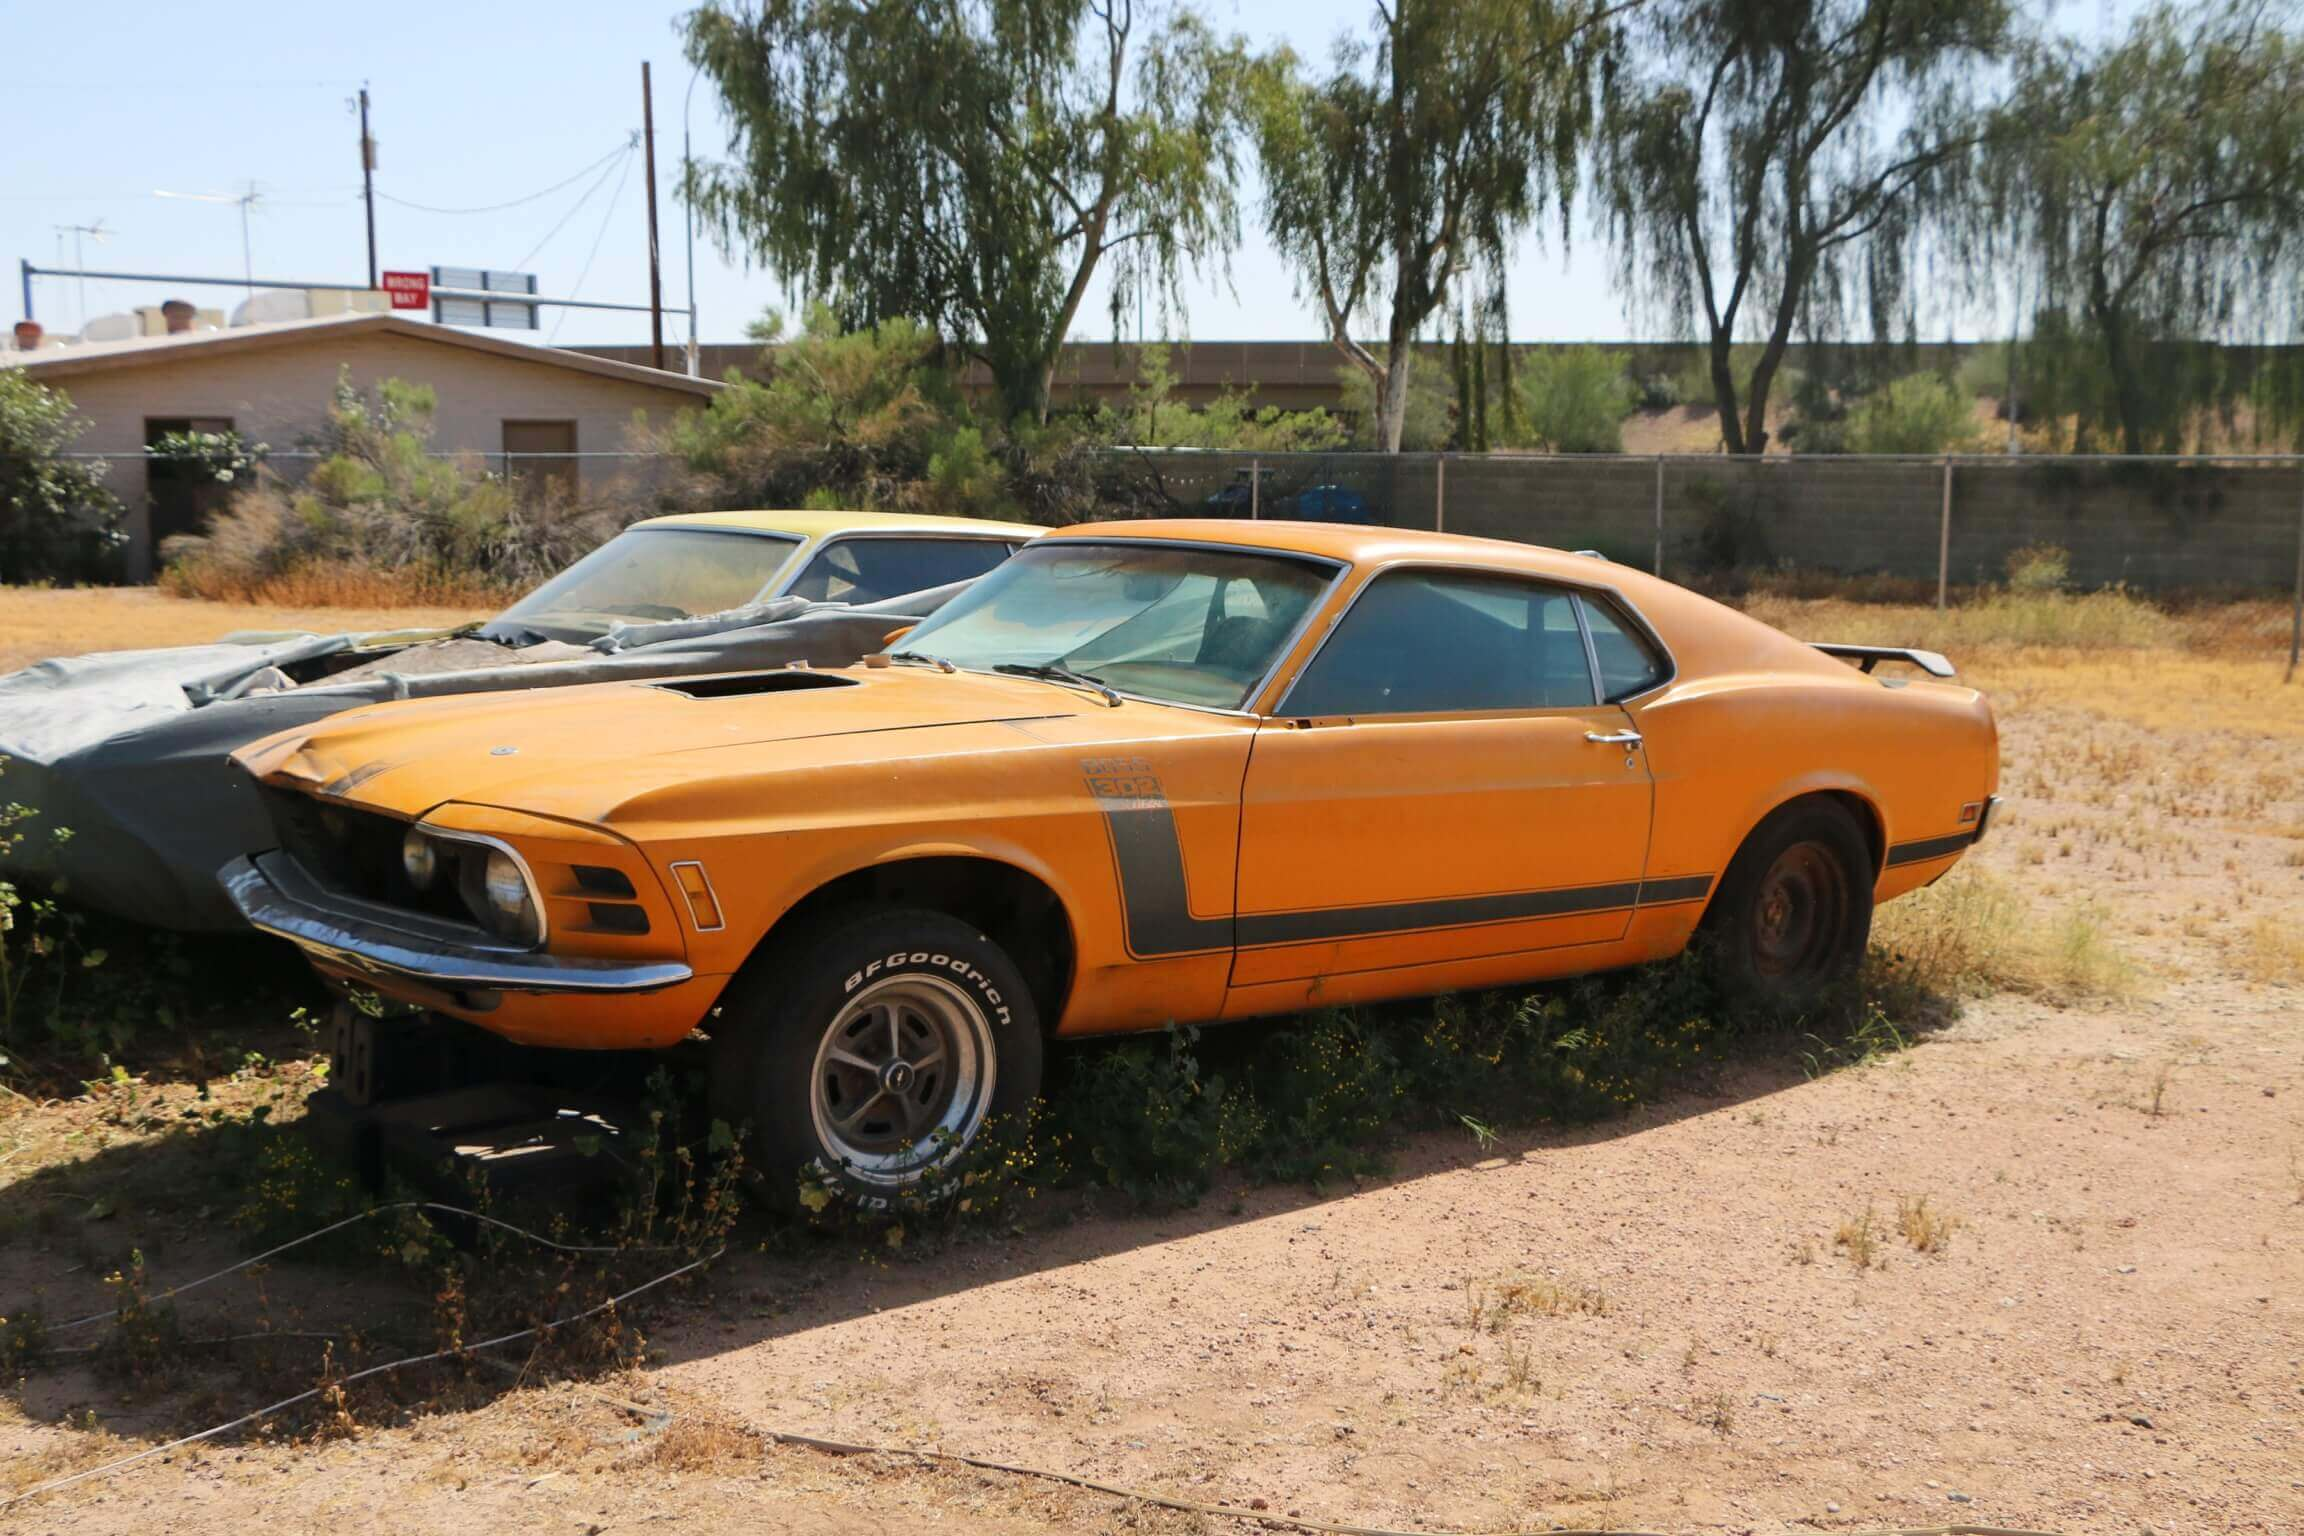 Cars In Barns: 1970 Ford Mustang BOSS 302